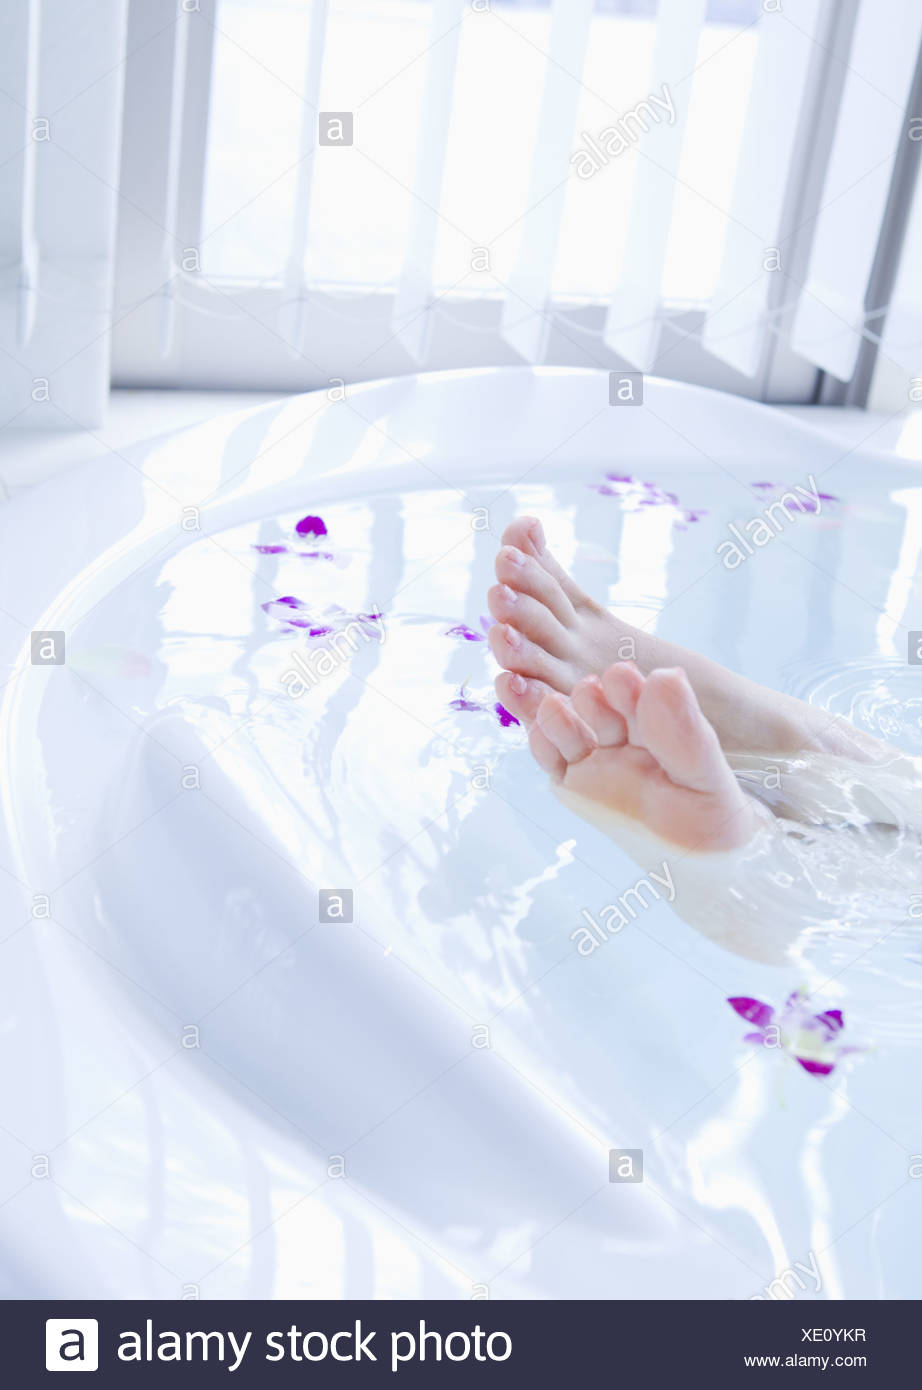 Japanese Foot Bath Stock Photos & Japanese Foot Bath Stock Images ...